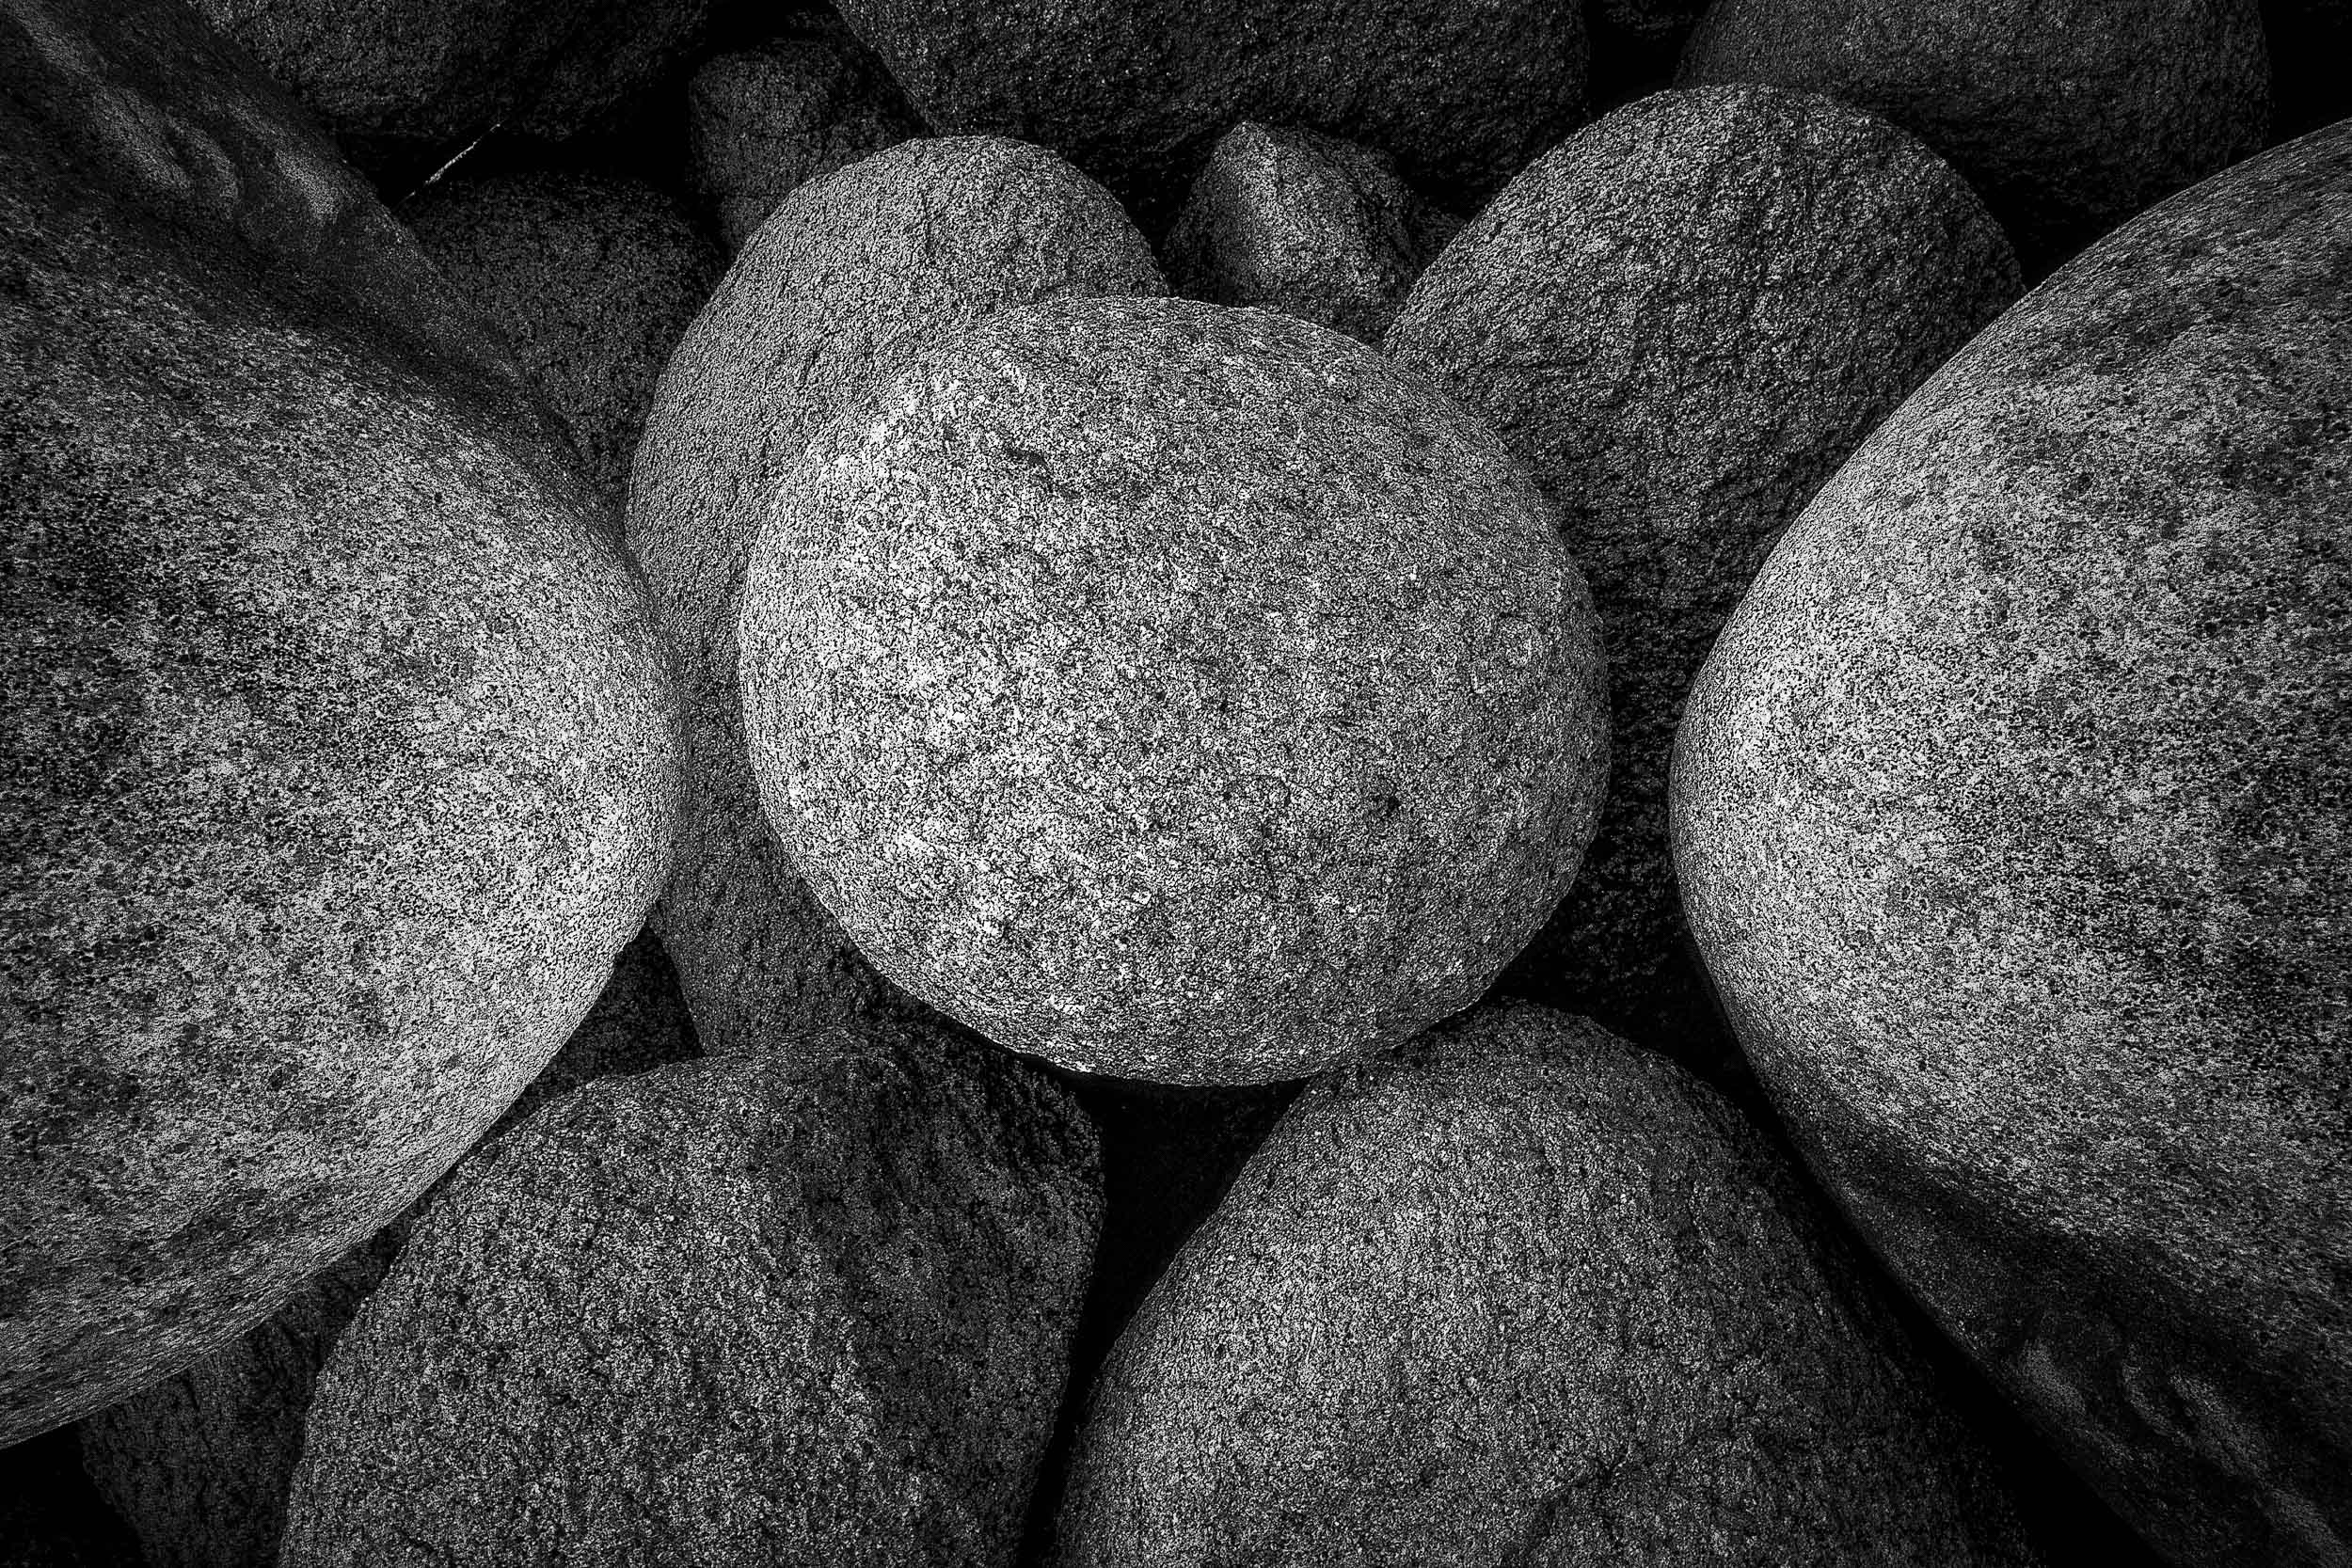 Stones , rounded by waves and wind, on the beach at  Cape Woolamai  on  Phillip Island, Australia .